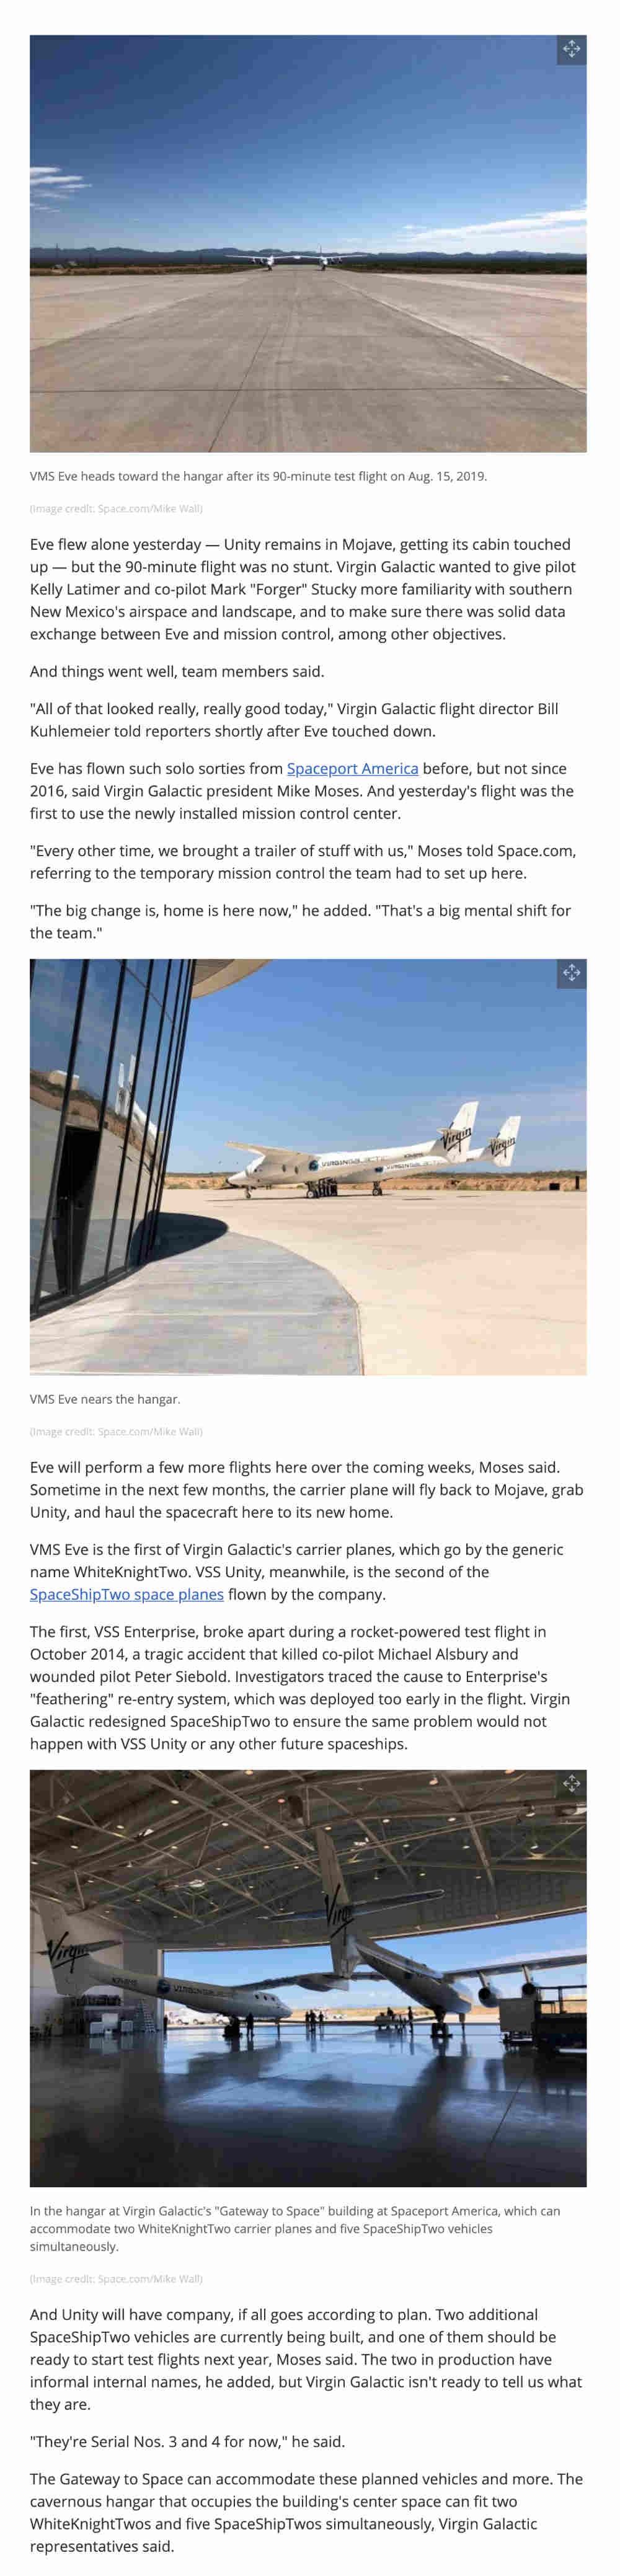 Virgin Galactic flies EVE in New Mexico